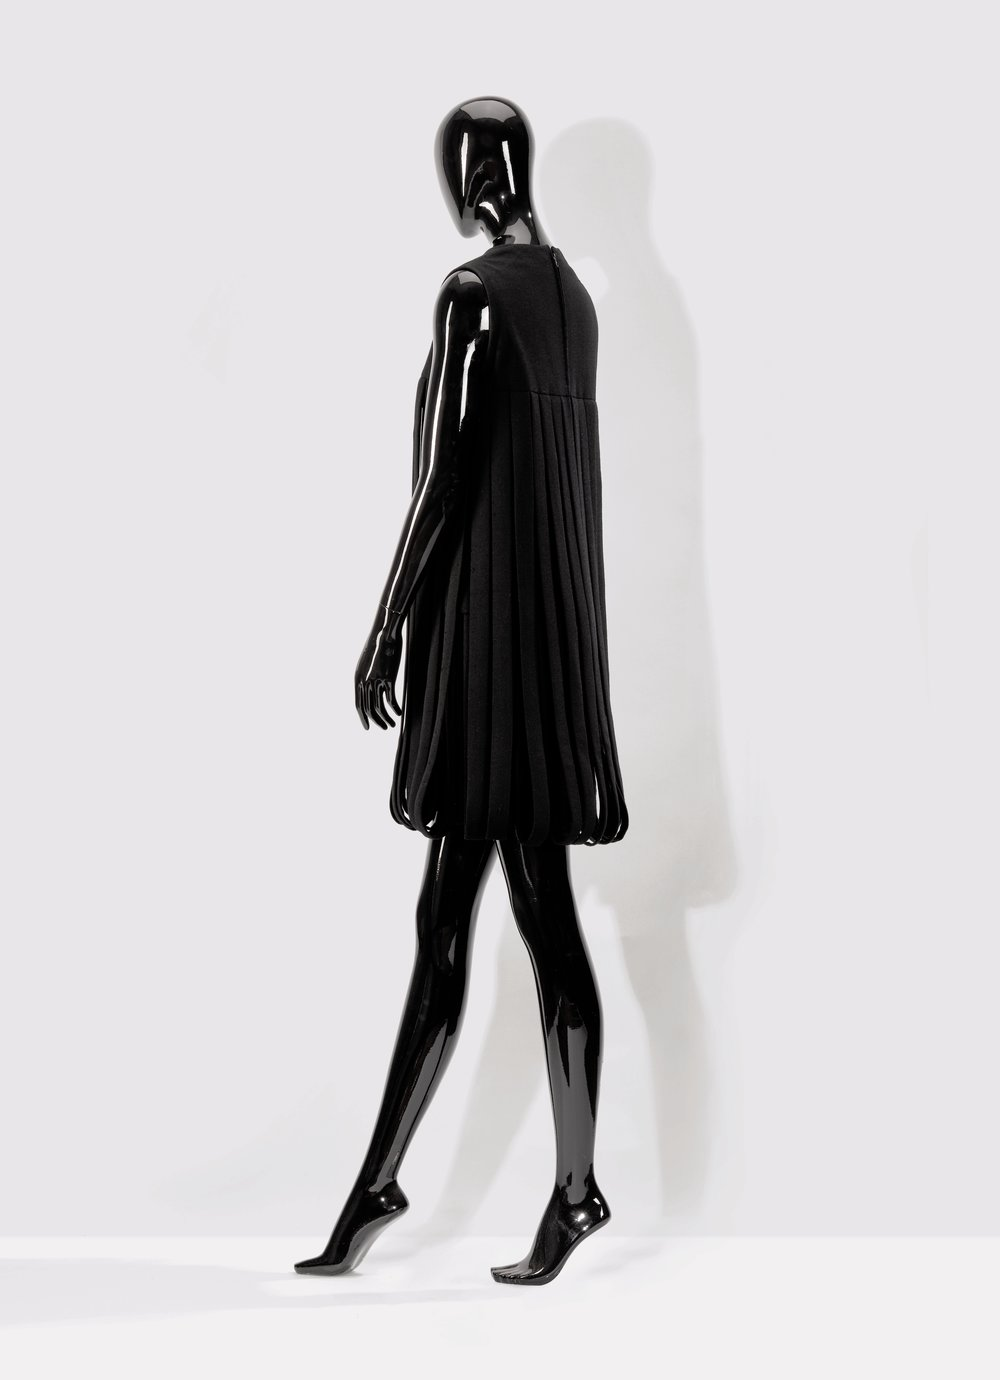 Pierre Cardin - 1969     « Car Wash » model  A crepe cocktail dress with looped fringes  A similar dress in the Metropolitan Museum of New York, and colorful dress in the Victoria and Albert Museum of London's collections  Estimate : €500-900